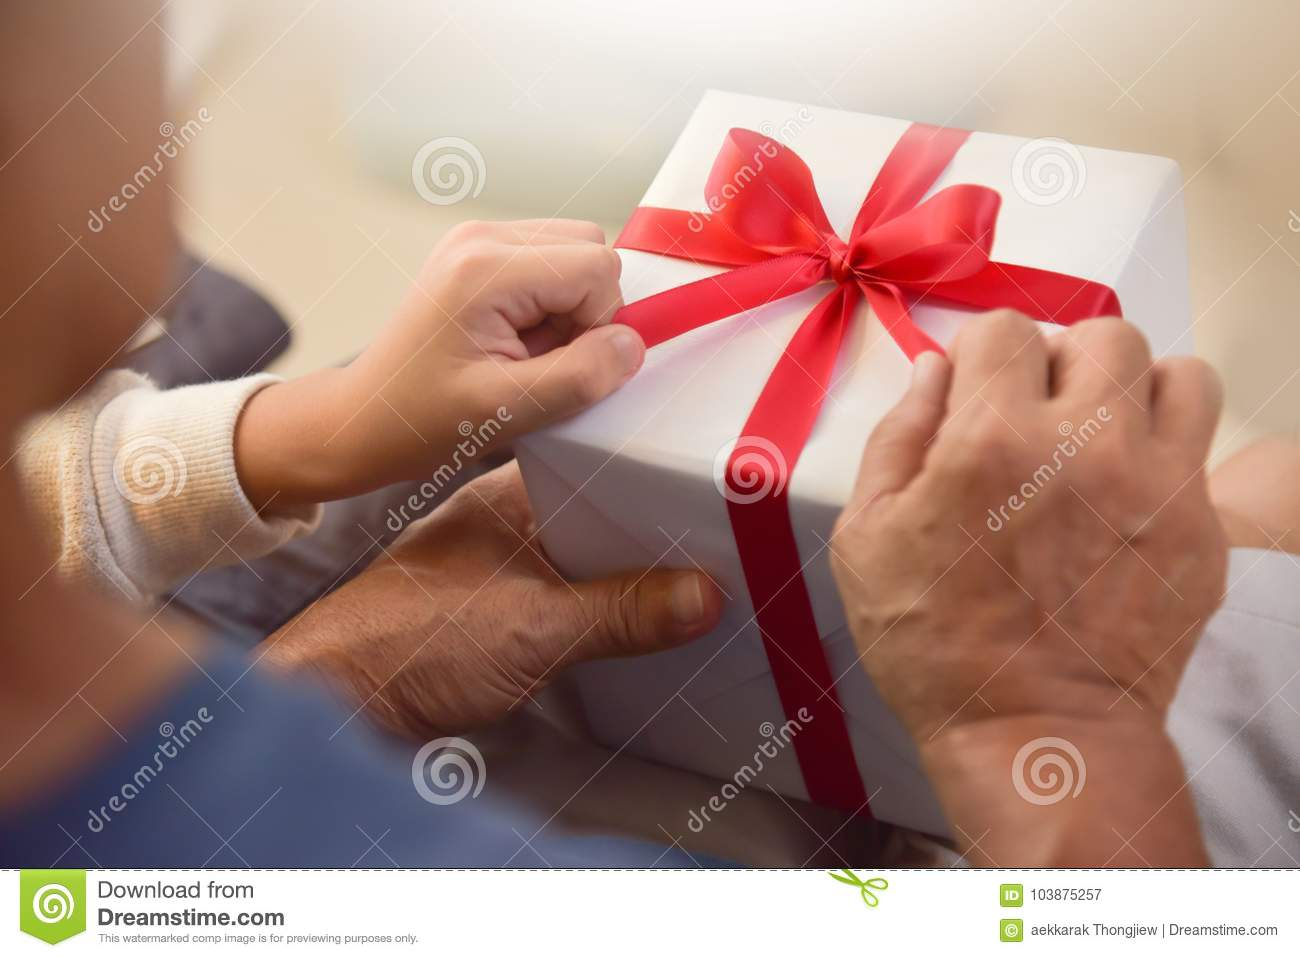 Asian Boy And Elderly Man Holding On Red Ribbon Of White Gift Box Birthday Christmas New Year